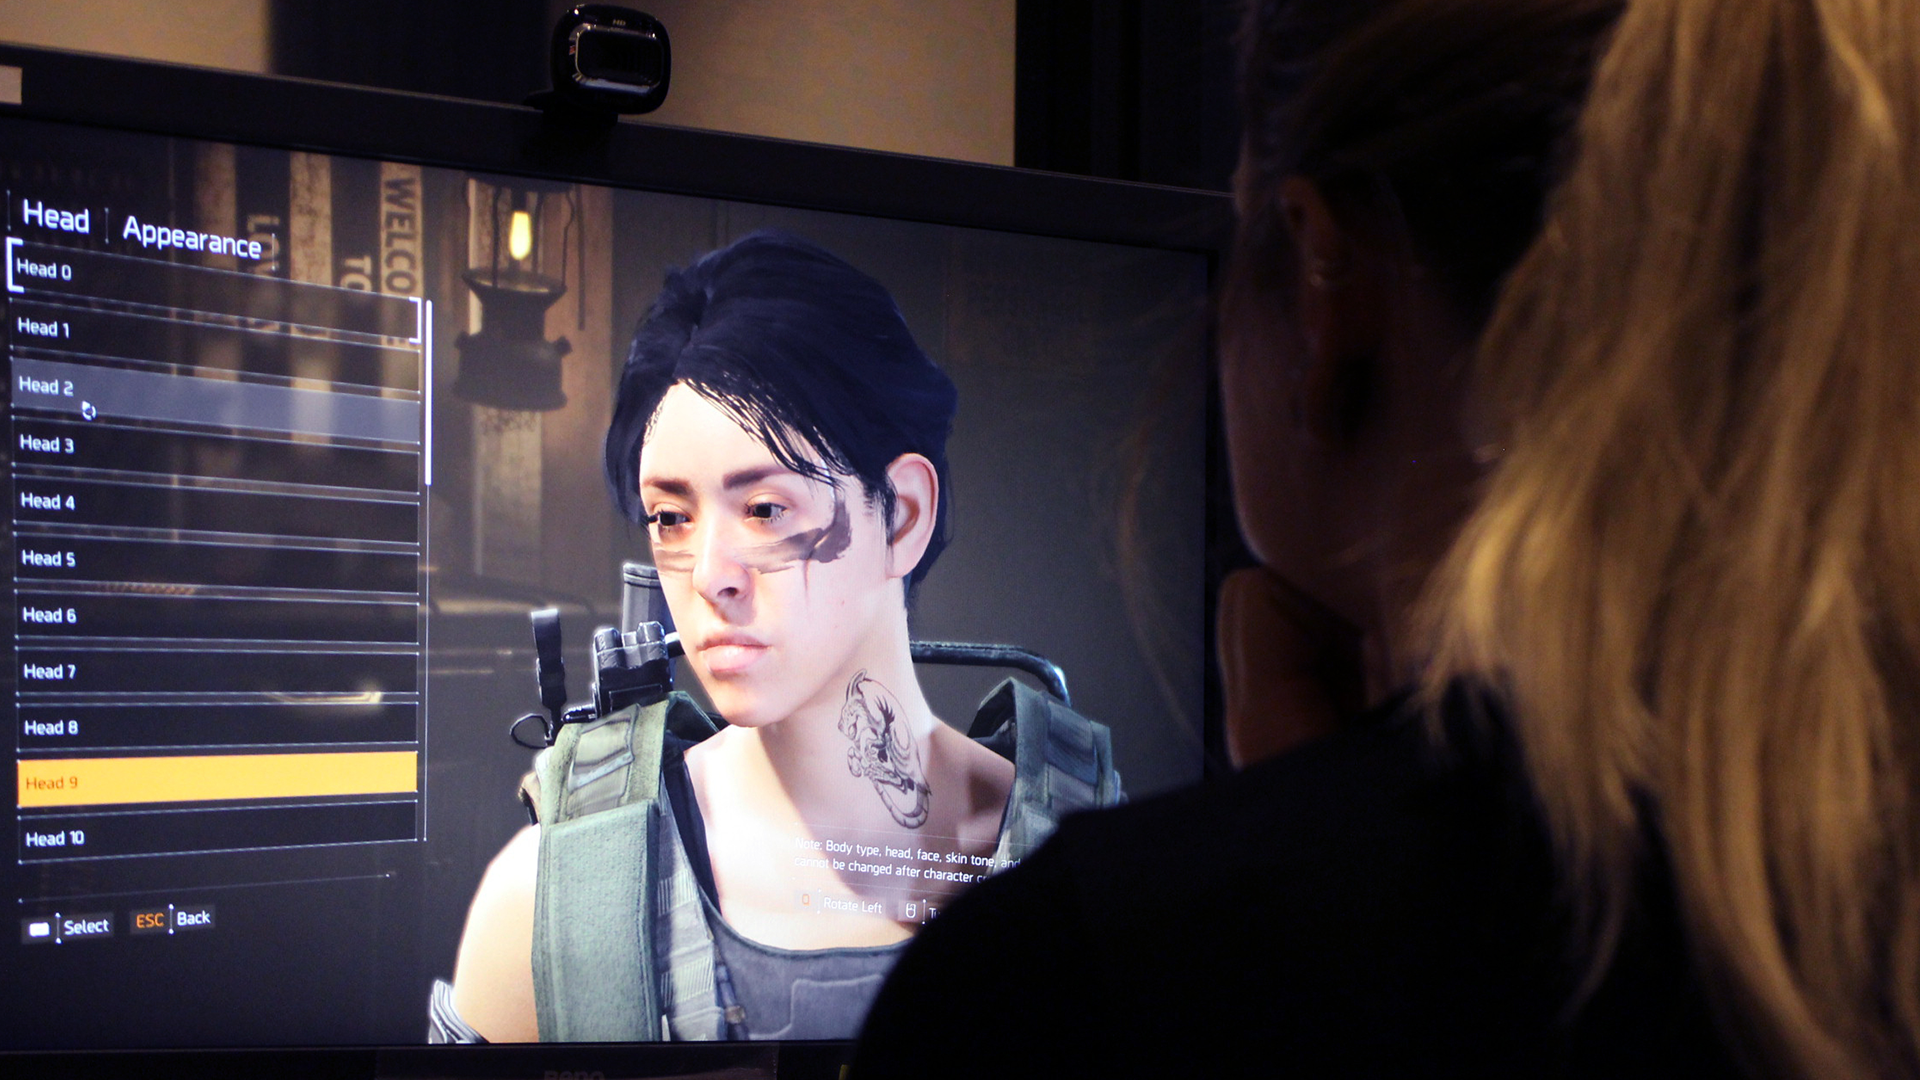 a71b35932 How Tattoos Help Build the World of The Division 2 - Massive